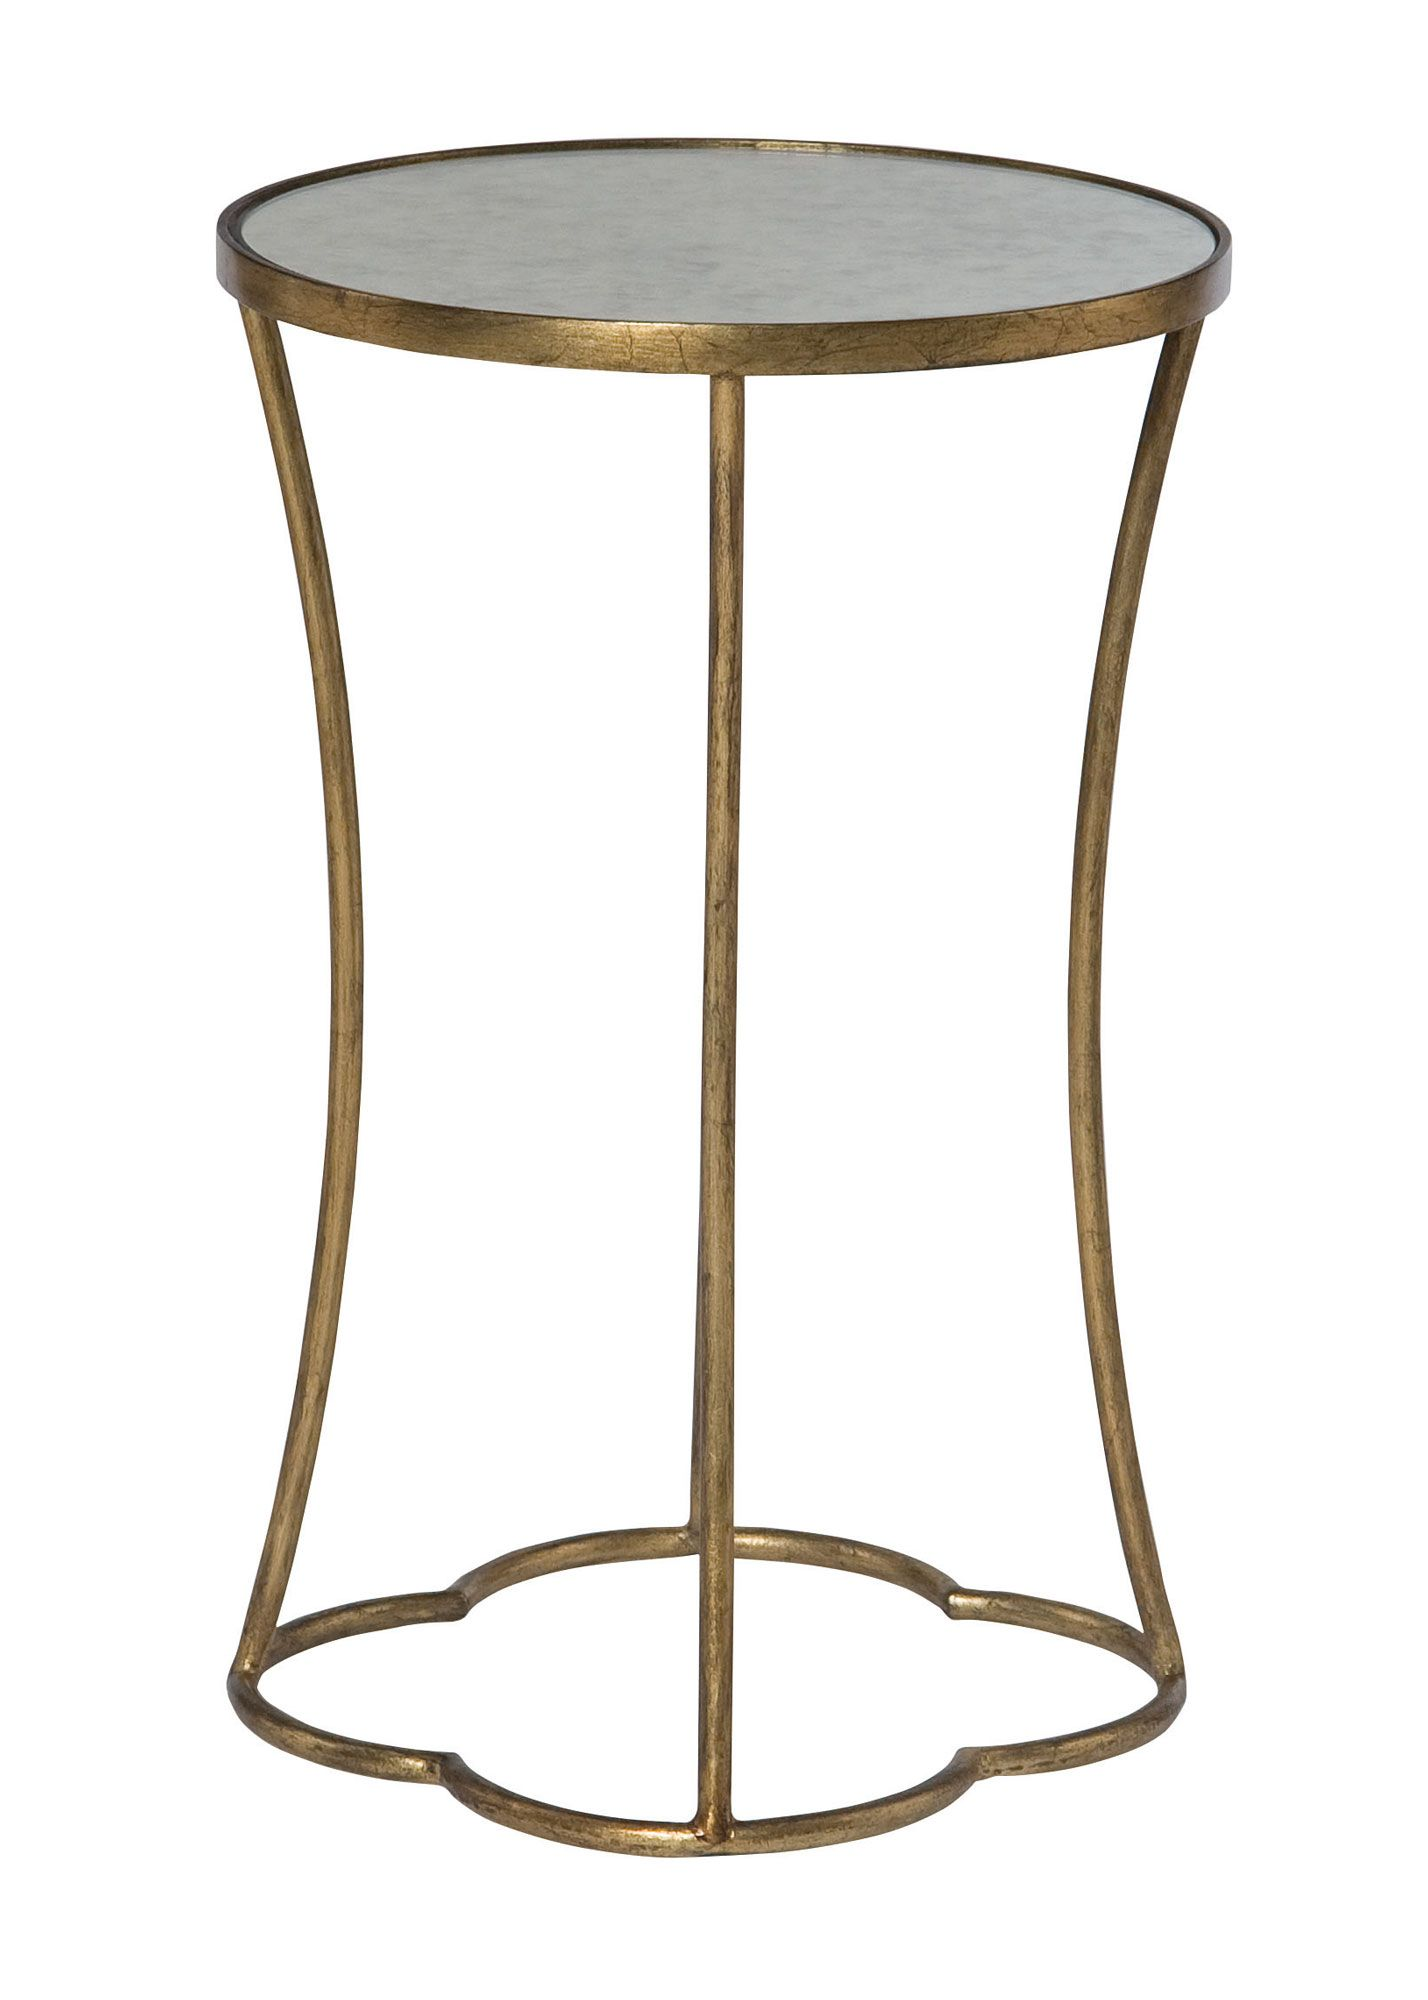 348 006 Kylie Round Accent Table